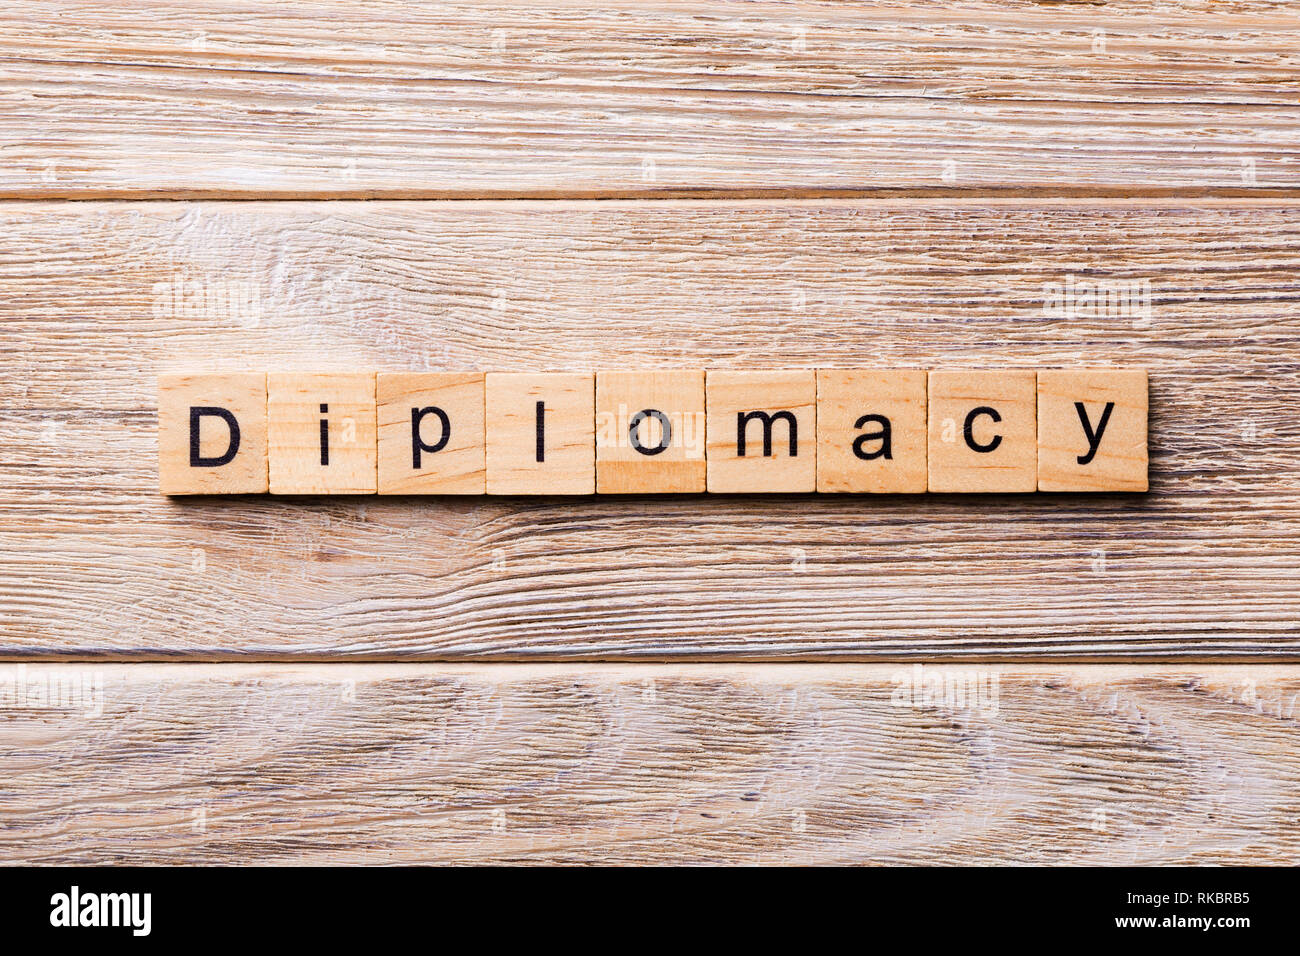 diplomacy word written on wood block. diplomacy text on wooden table for your desing, concept. - Stock Image